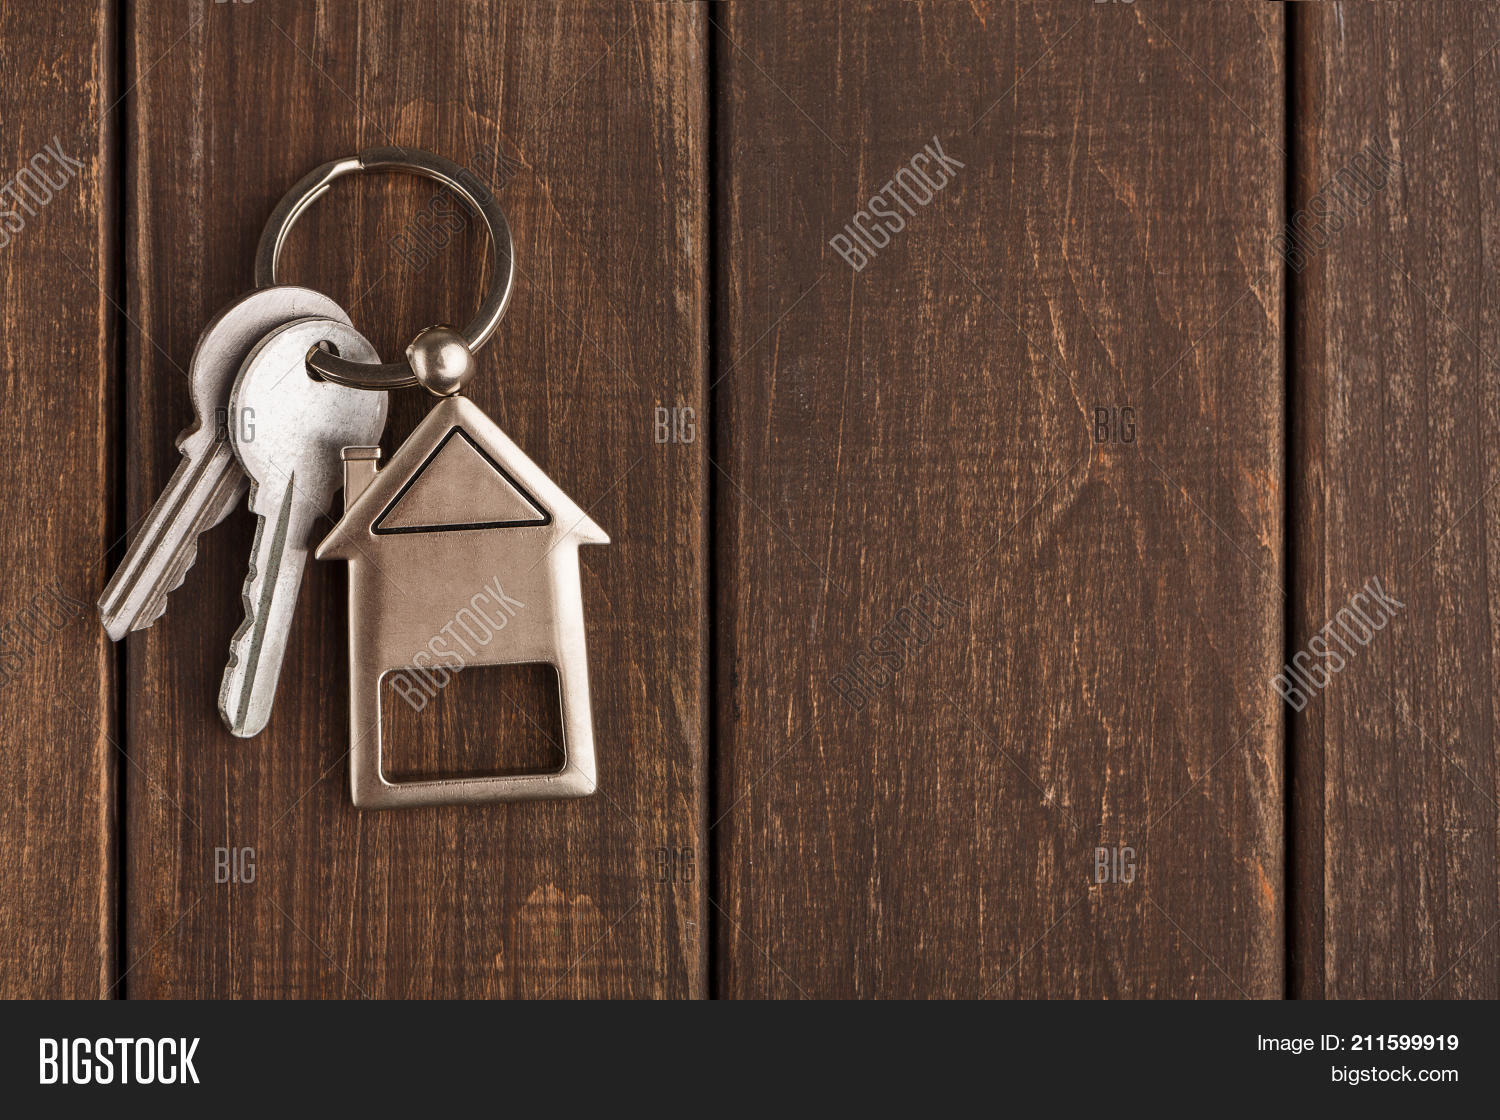 Two Steel Keys House Image & Photo (Free Trial) | Bigstock